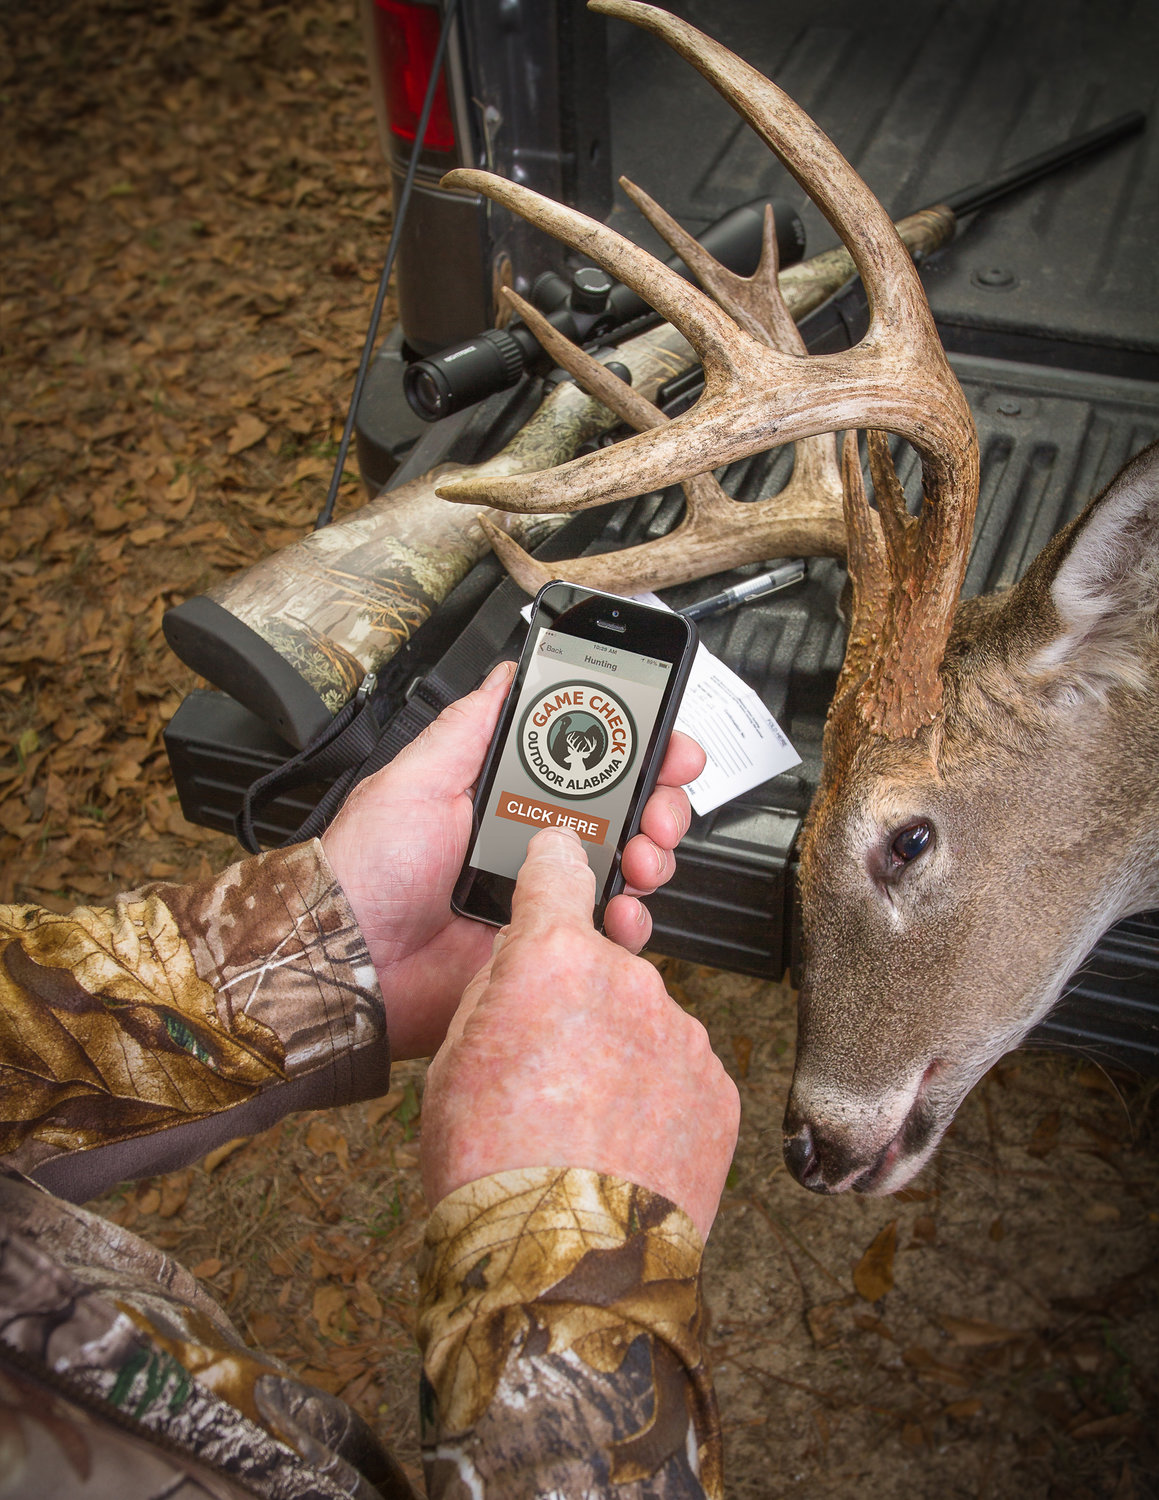 Hunters in Alabama can now use the reactivated 800 number to report harvests of deer and turkeys. The Outdoor AL app continues to be the most popular and easiest way to comply with the Game Check requirements.